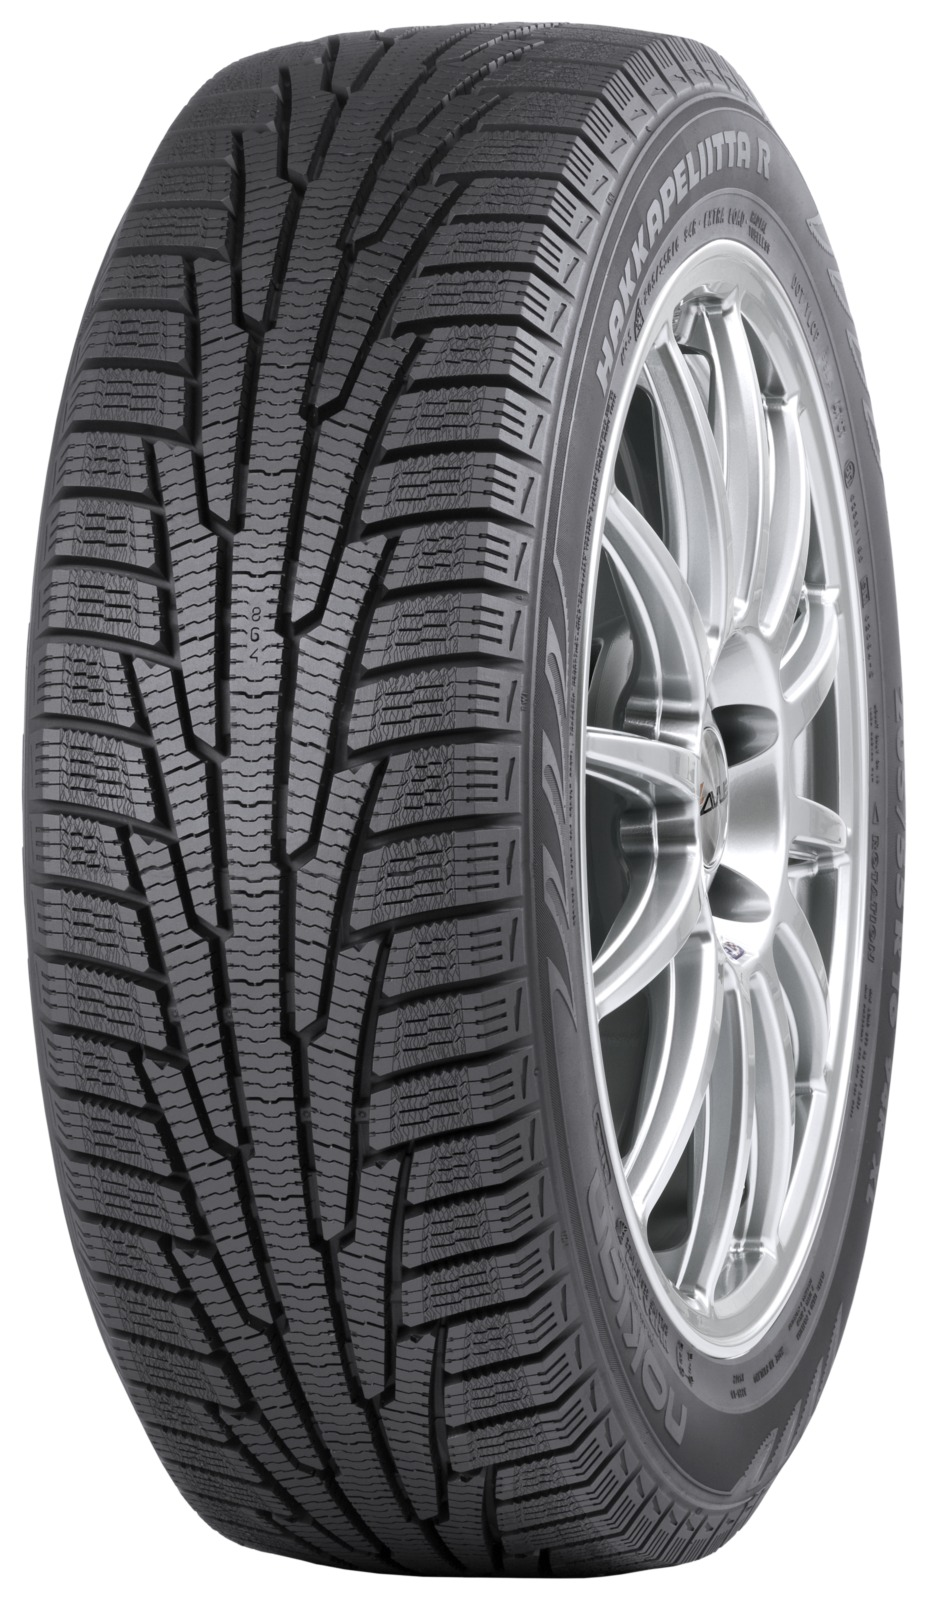 Winter Tires Goodyear Nordic Or Michelin X Ice Xi2 >> Purchase Decision Winter Tires Part 1 Valuecanuck Com